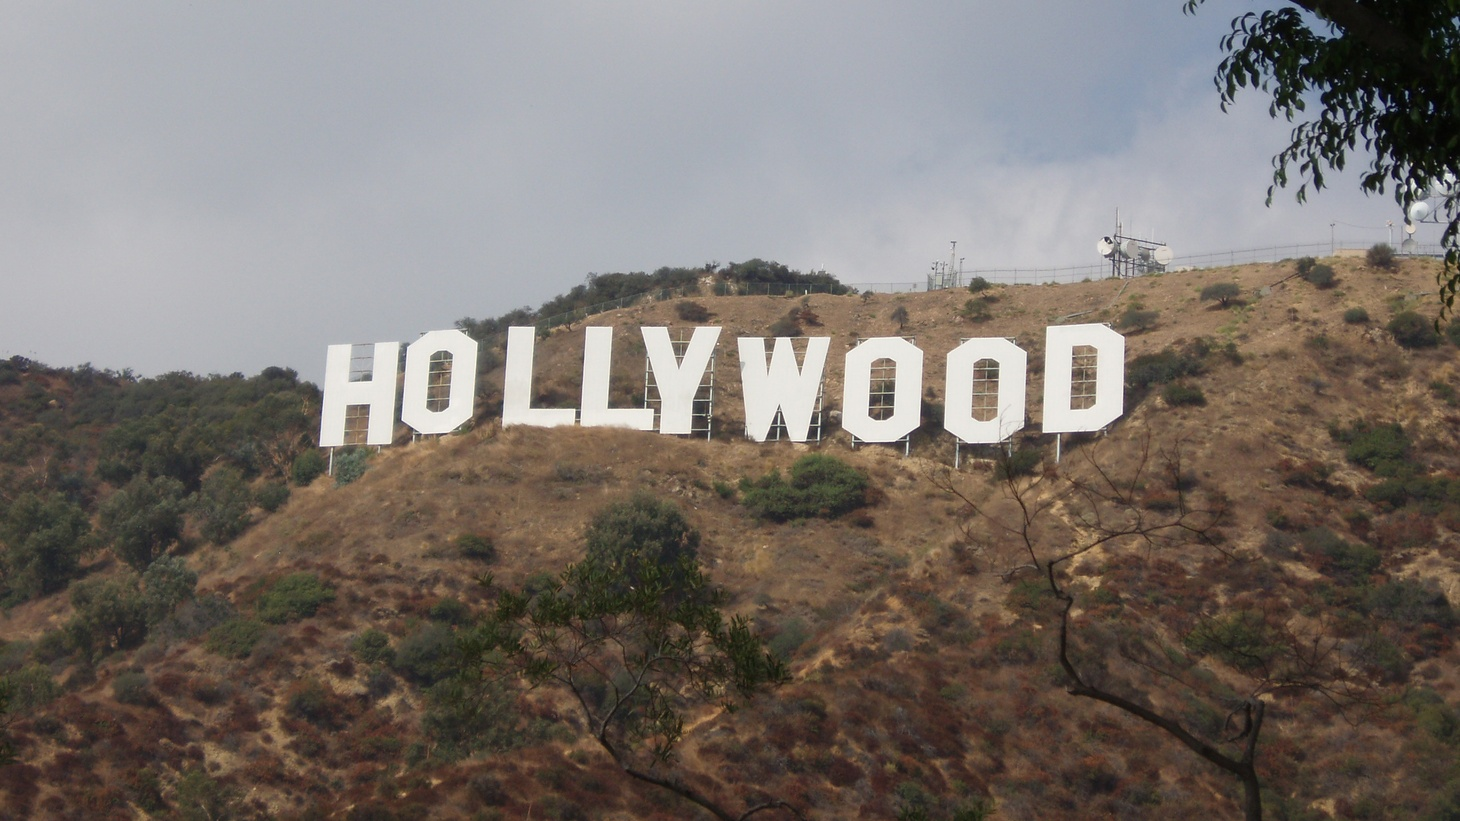 The A.C.L.U. is asking state and federal authorities to investigate hiring practices in Hollywood for gender discrimination. What's the civil rights organization asking for, and what's it like to be a woman working in the industry today?